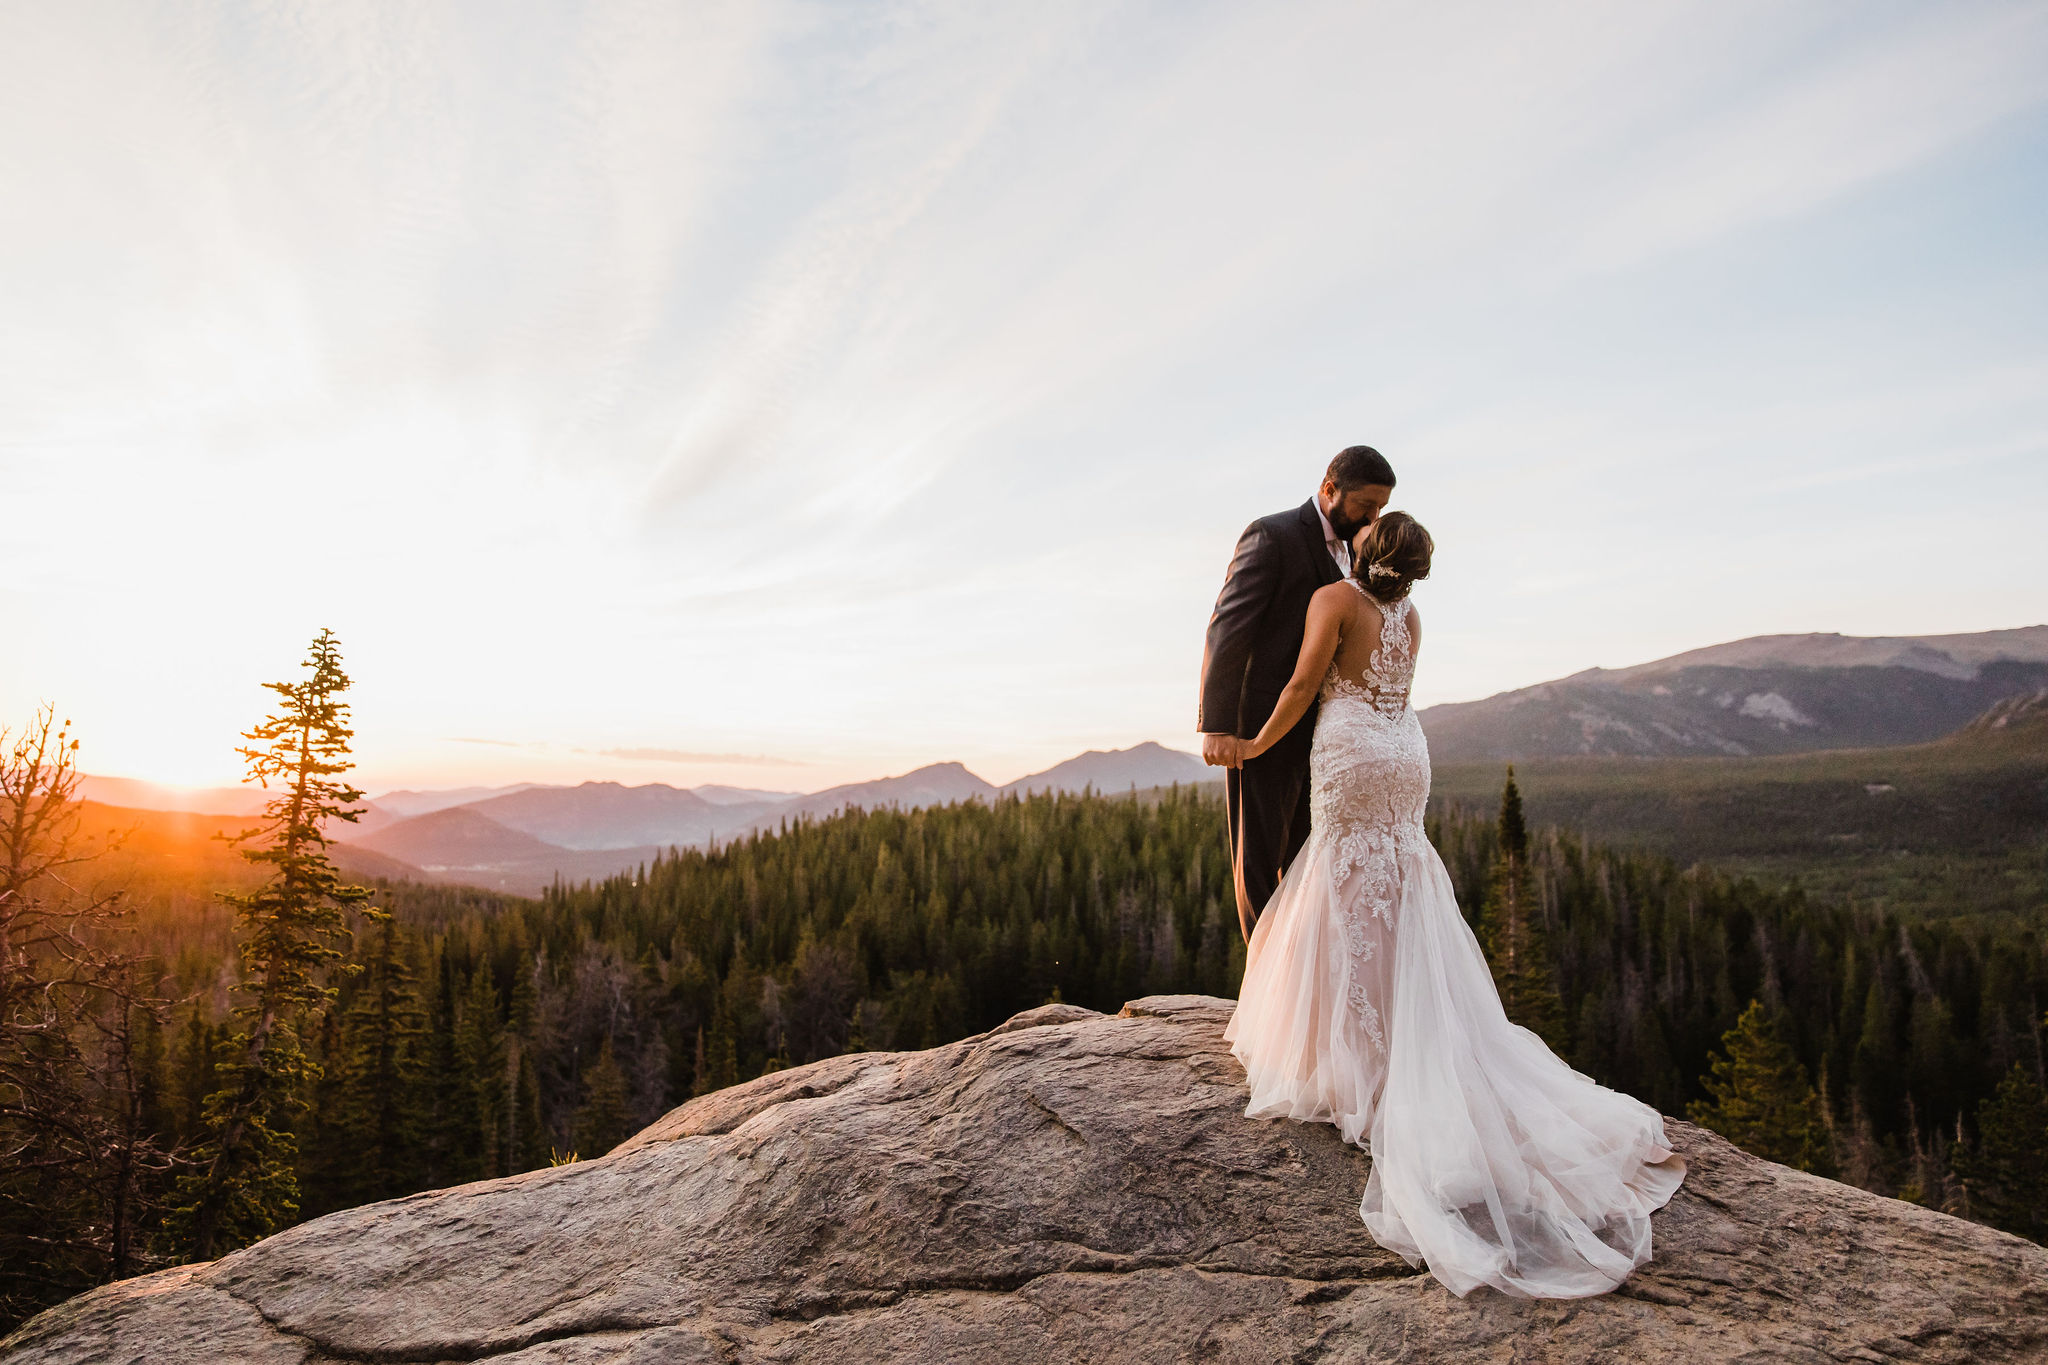 Colorado Elopement Photographer | Sunrise Elopement